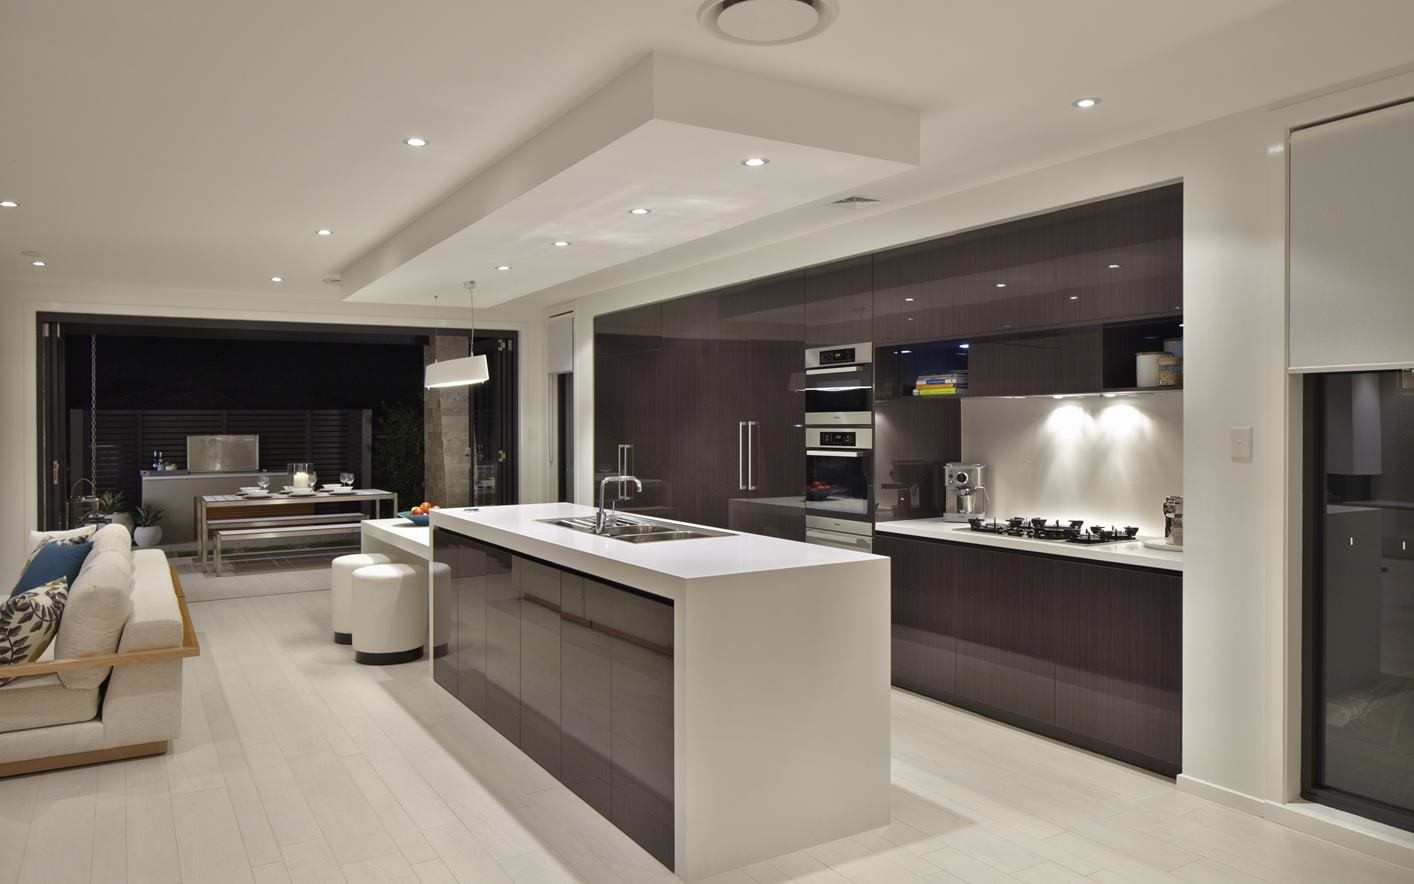 Kitchen - C gloss dark wood - B white tr